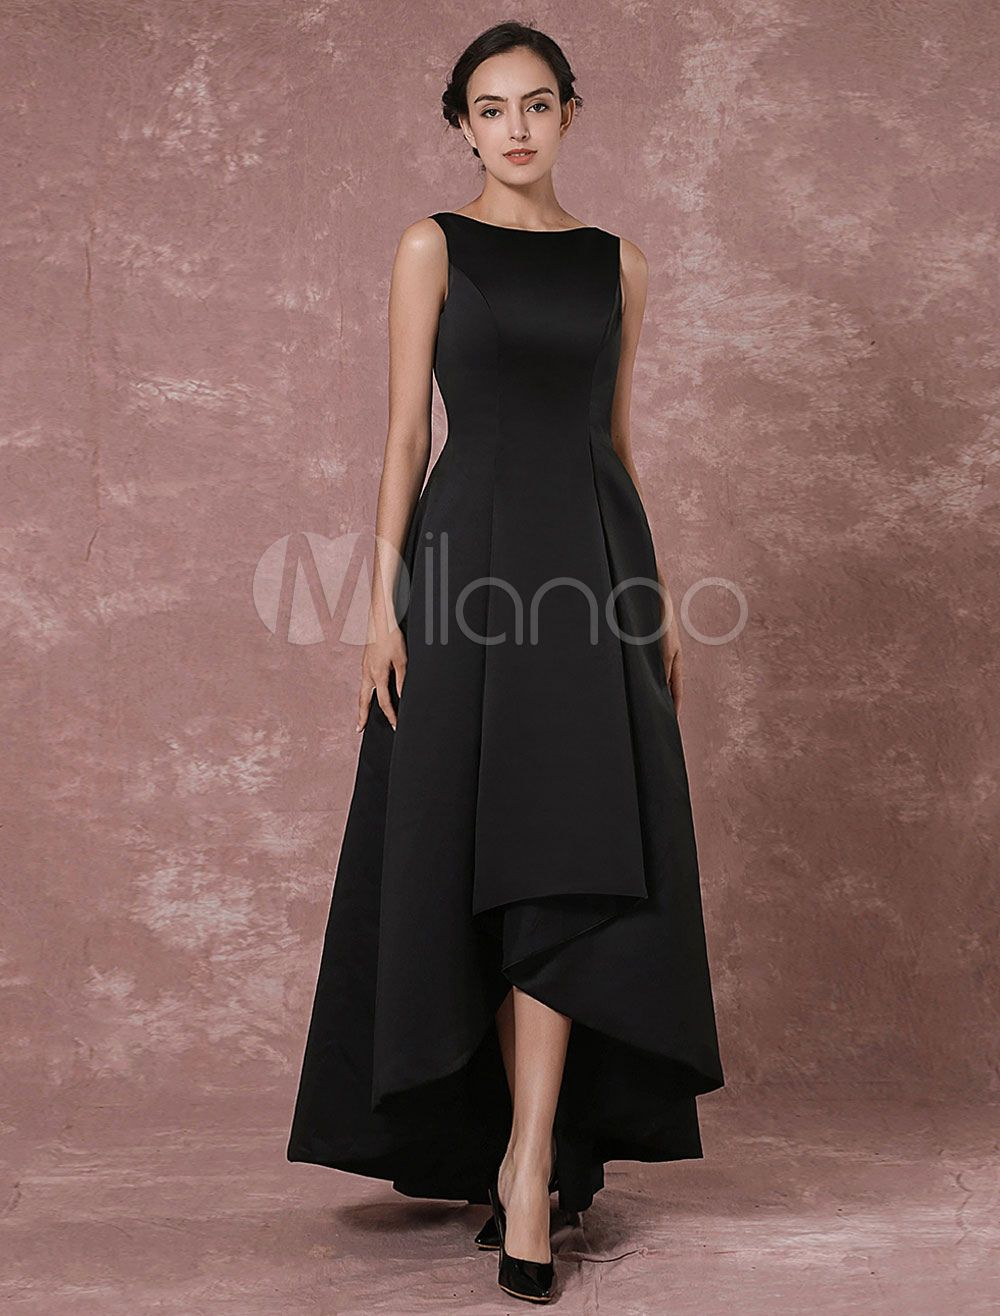 Black prom dresses long backless evening dress taffeta high low